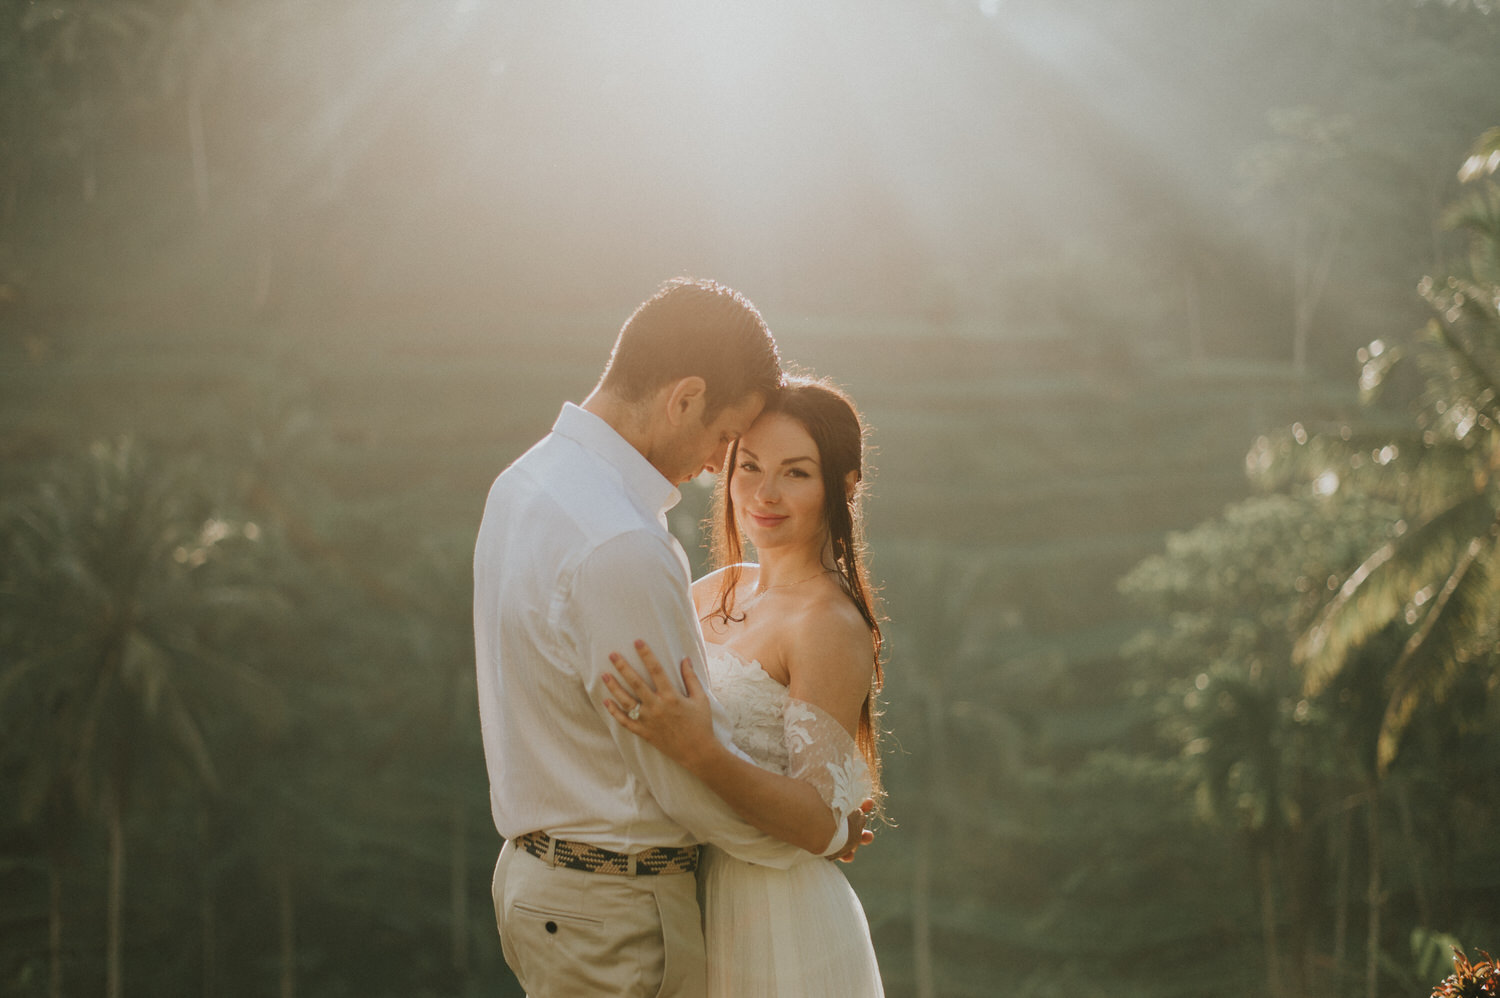 bali wedding - elopement - ubud wedding - diktatphotography - olga + Jason - 15